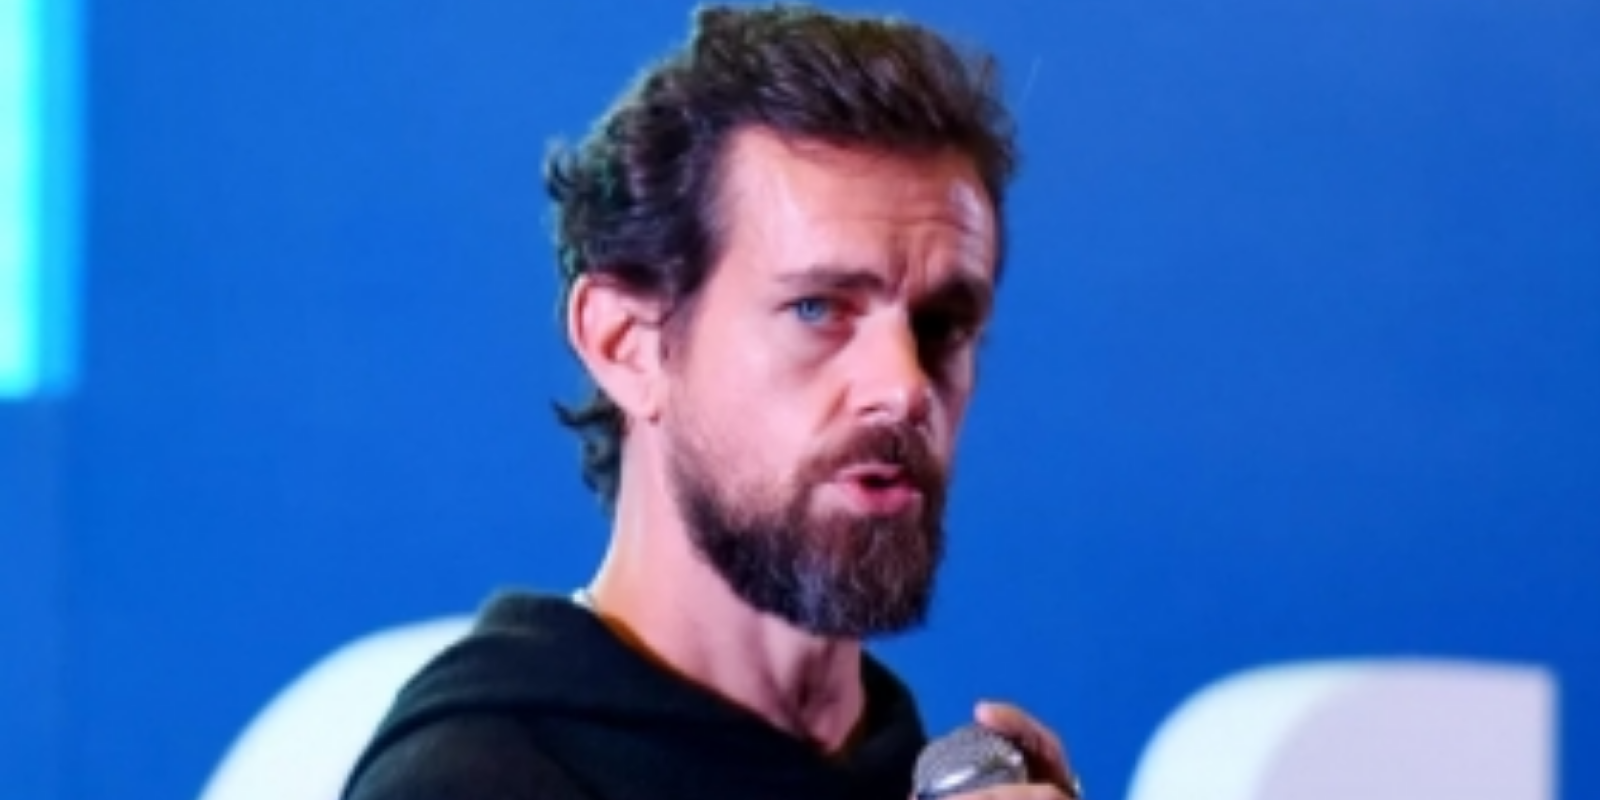 Twitter stock plunges after Trump ban